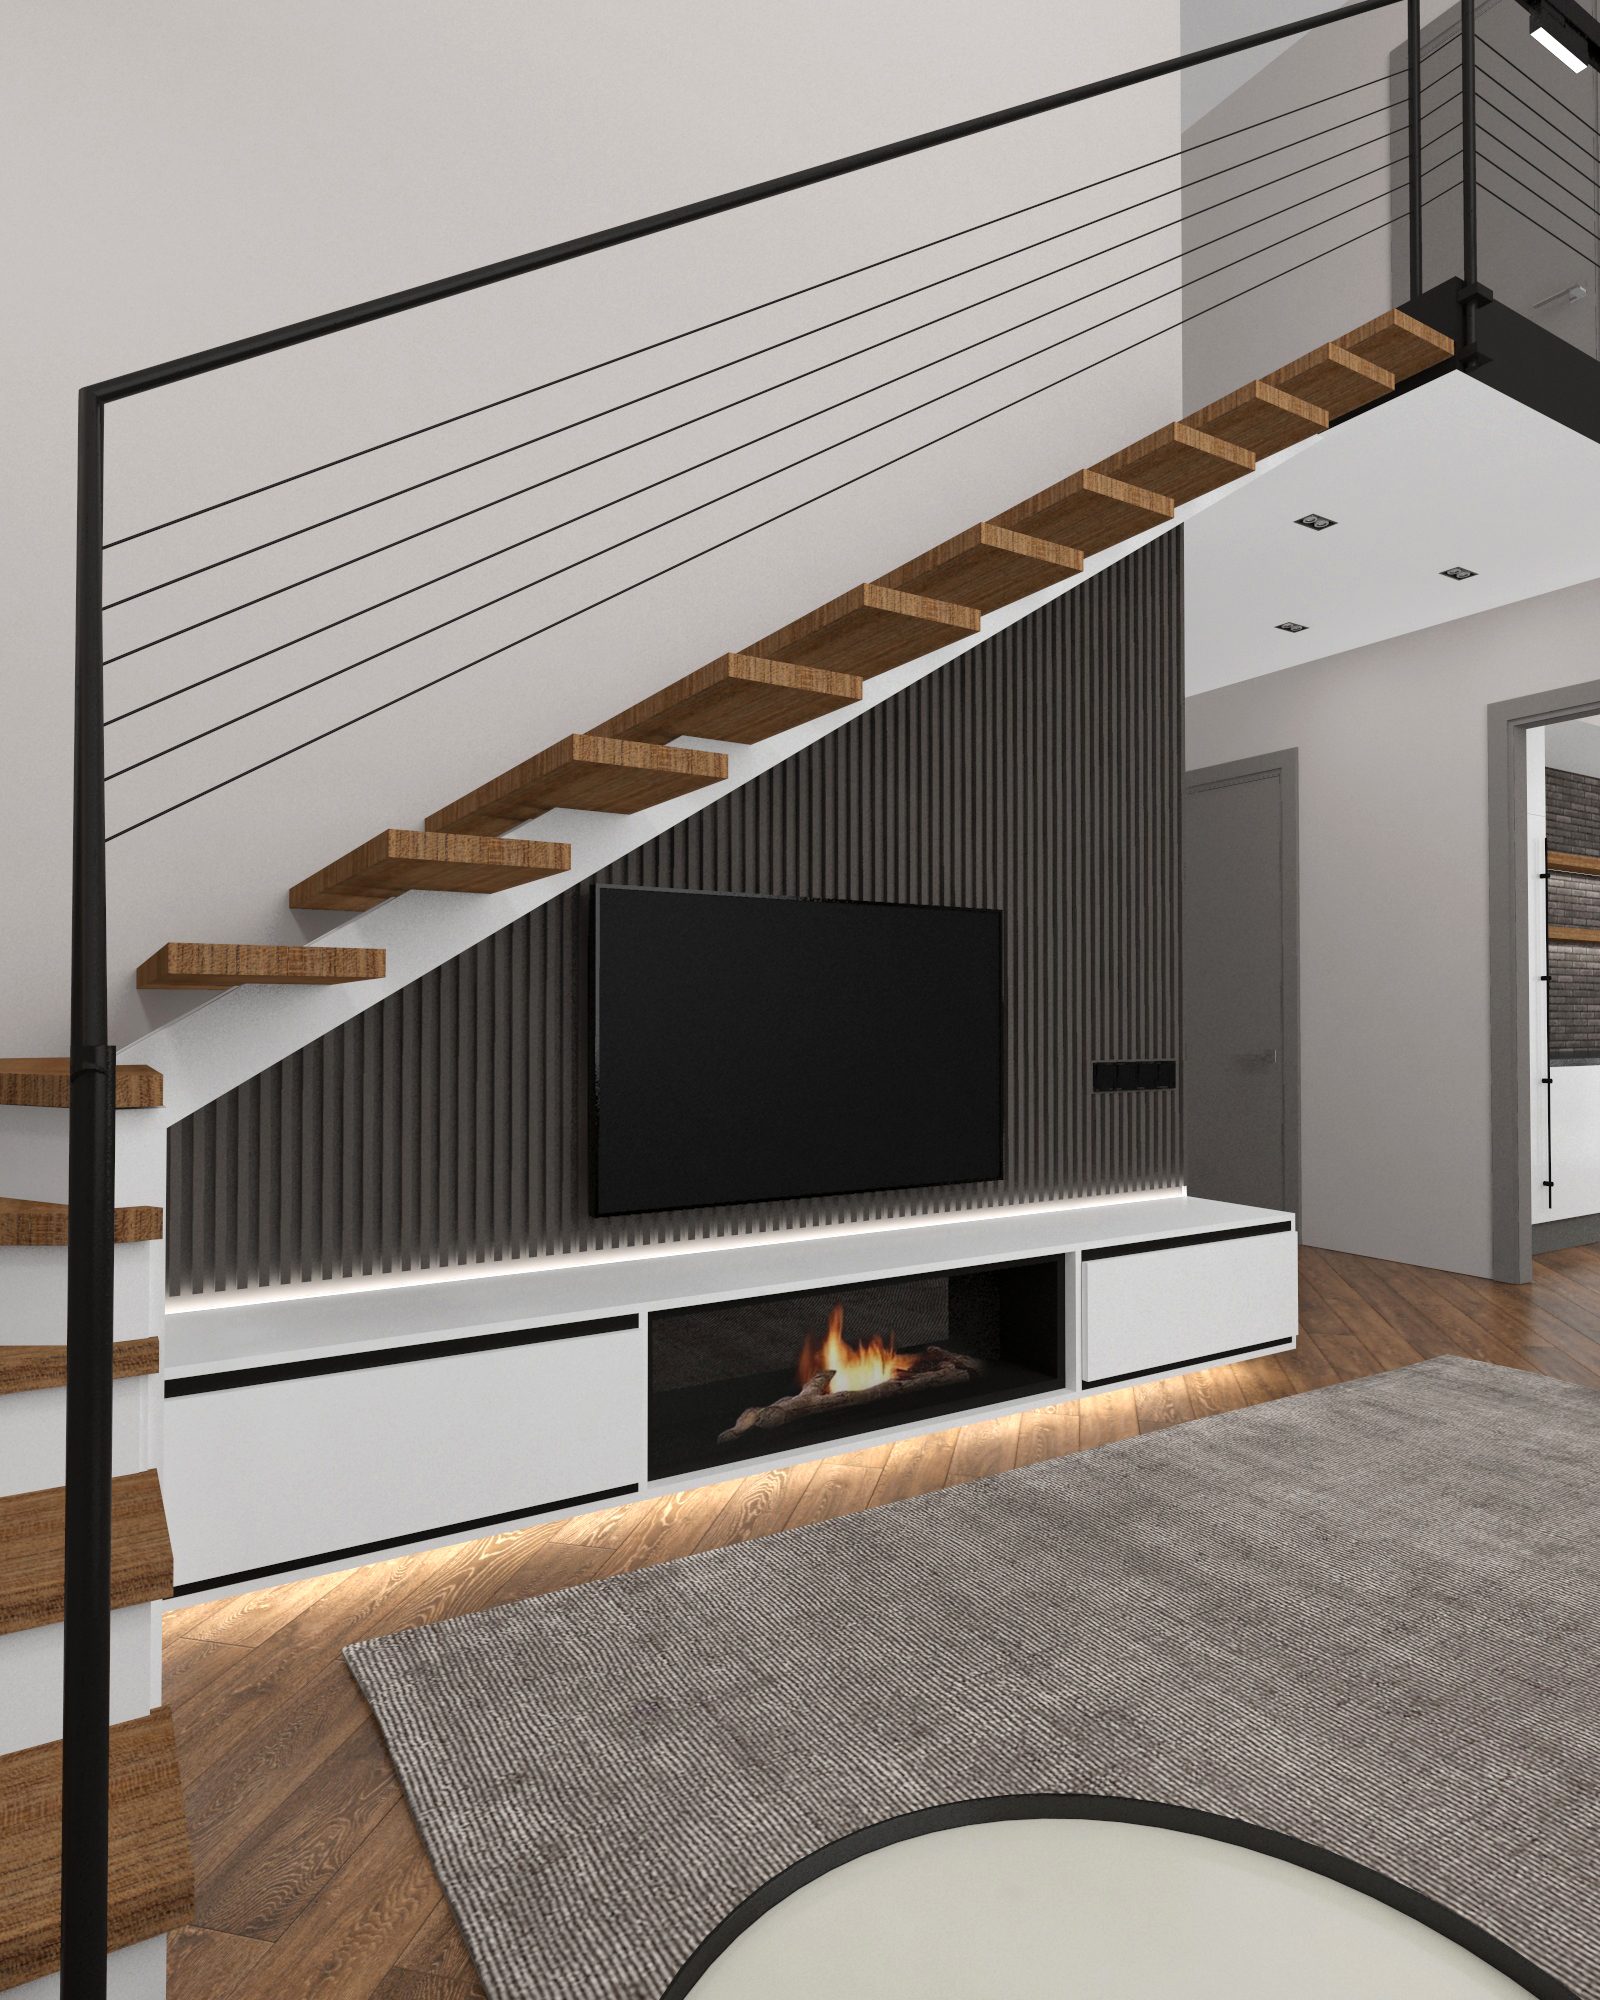 Eco house in 3d max vray 3.0 image